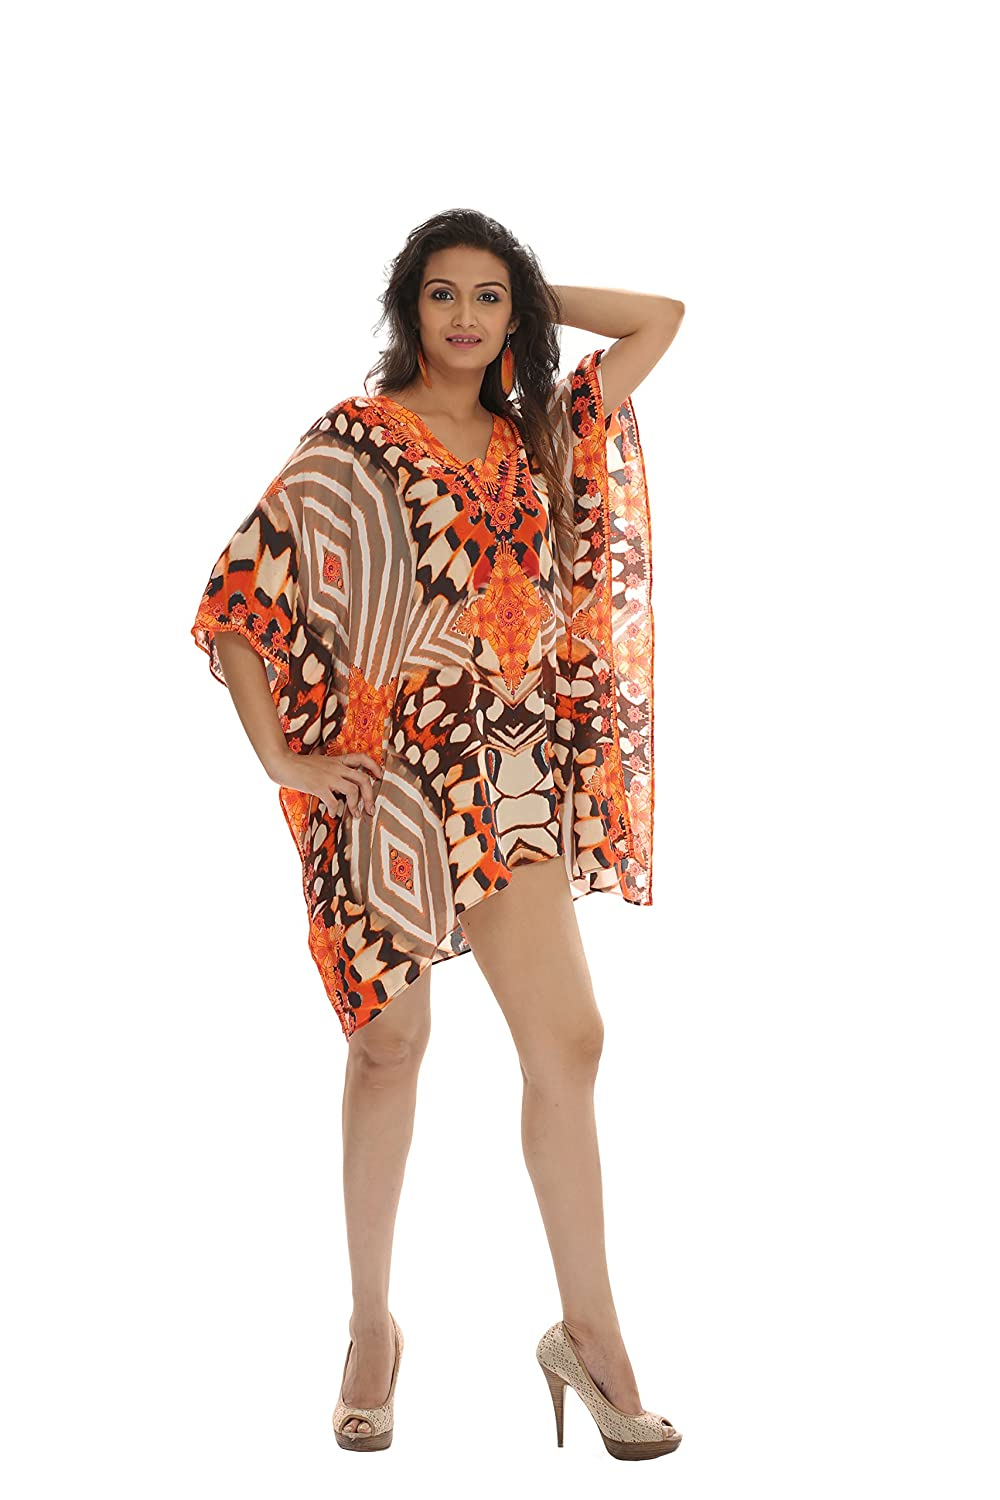 ea22cb3a0d Made In INDIA. Soft, Smooth, Lightweight Georgette Fabric. Perfect for  Elegant Day and Nightwear or worn as a cover-up for that beach ...